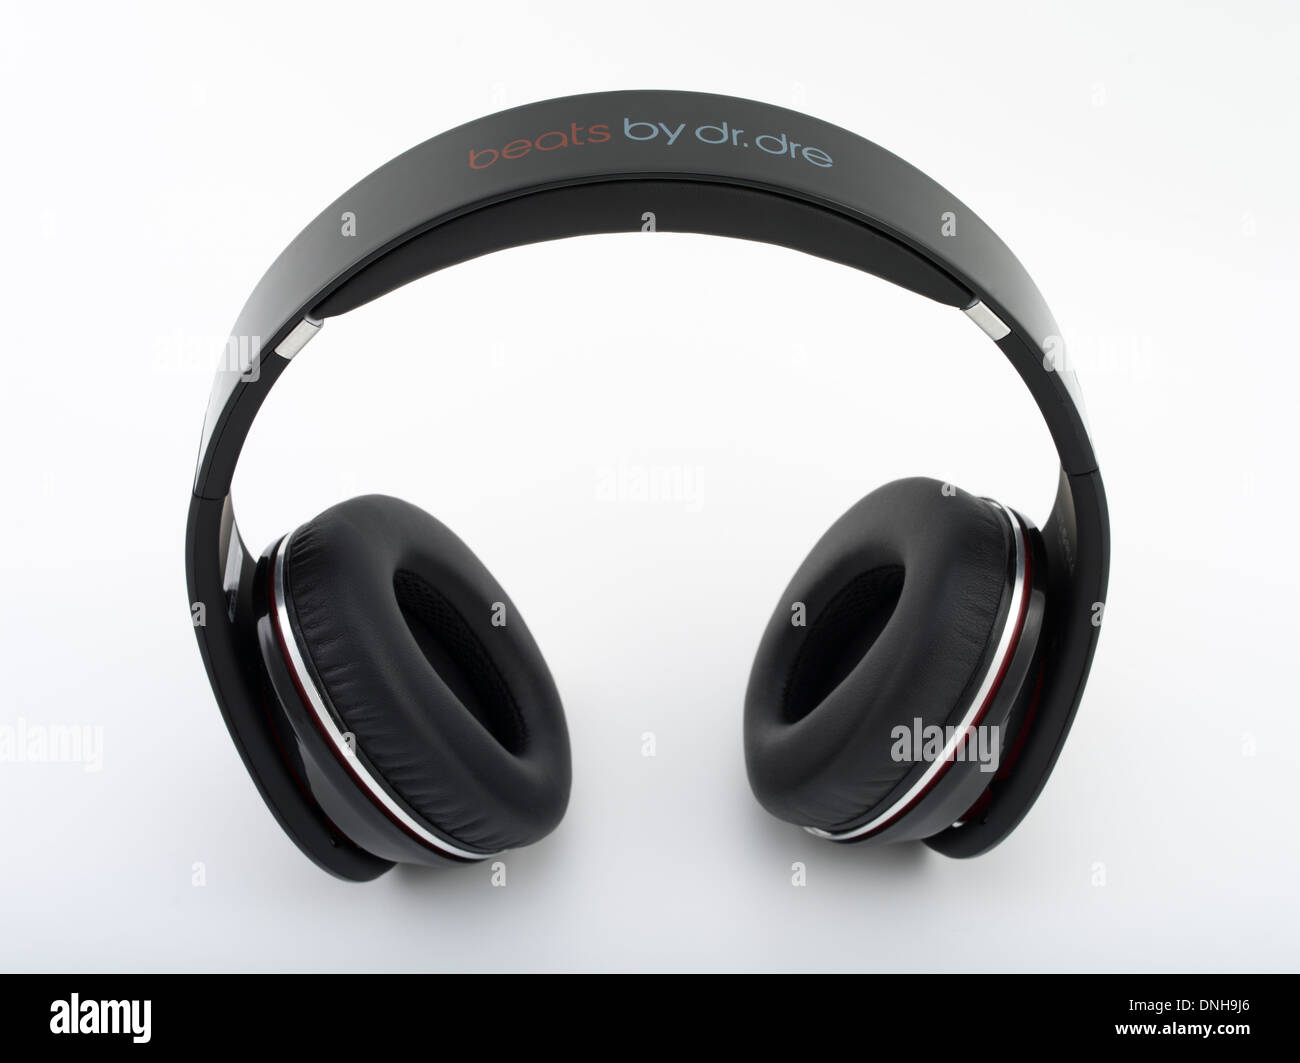 Beats by Dr. Dre studio headphones 2008 produced by Monster Cable. Iconic gadget / audio equipment. - Stock Image